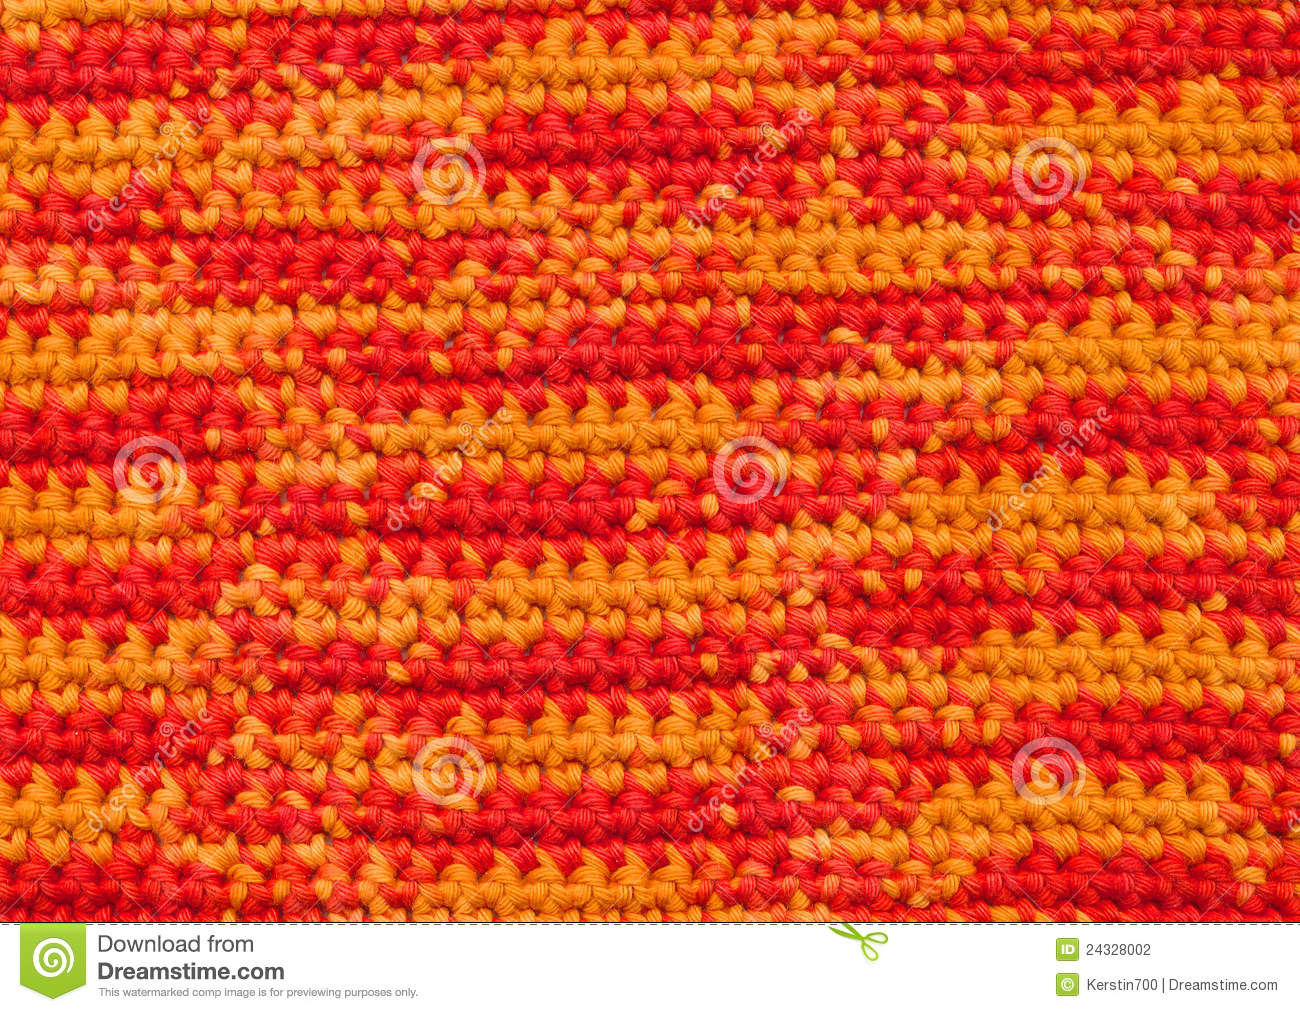 Crochet Patterns Multicolor Yarn : Background - Crochet - Variegated Yarn Stock Photography ...